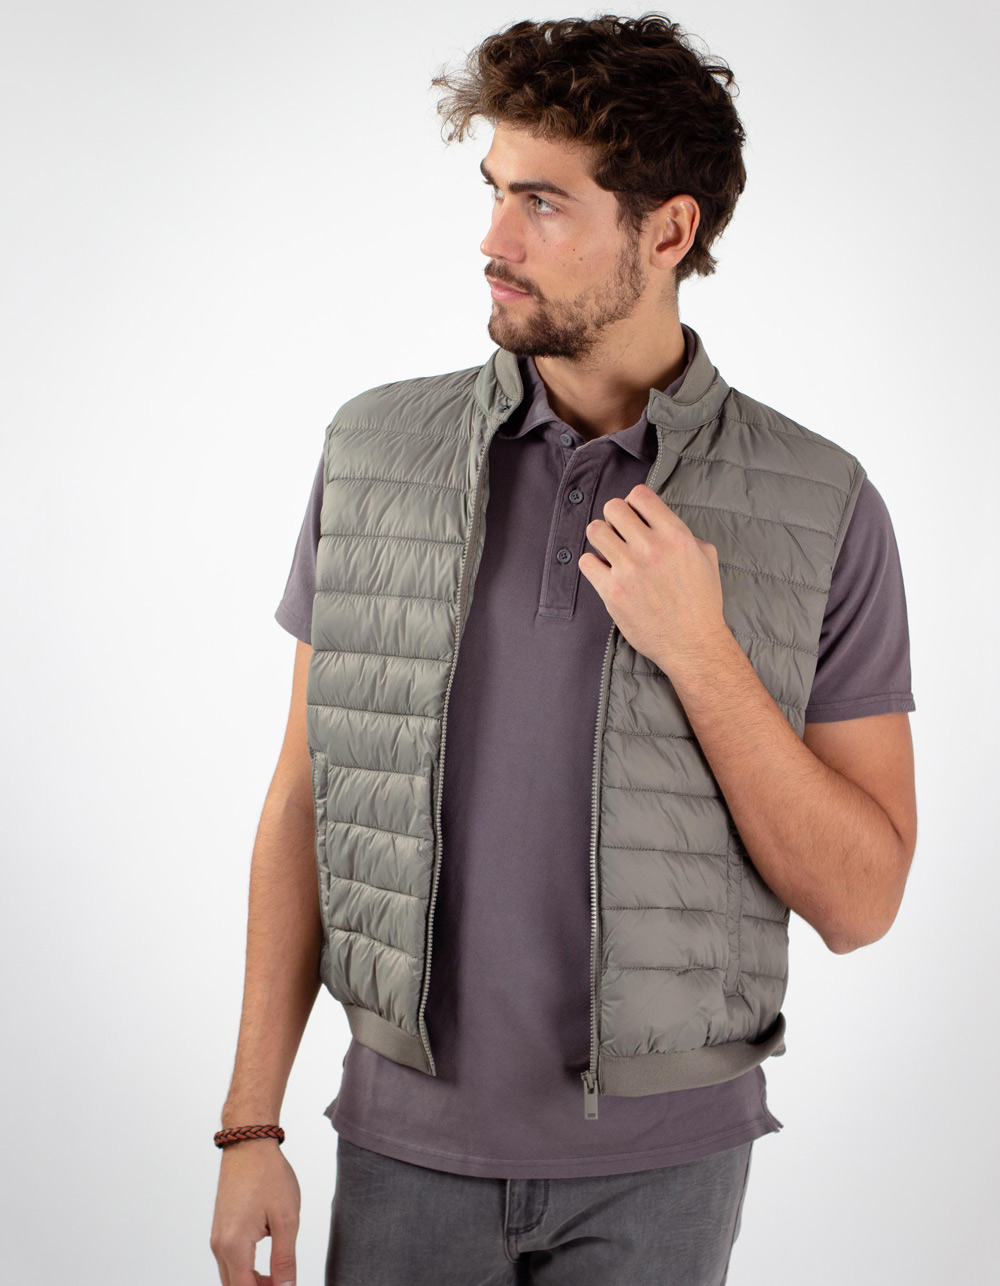 Grey vest front part padded back part of point